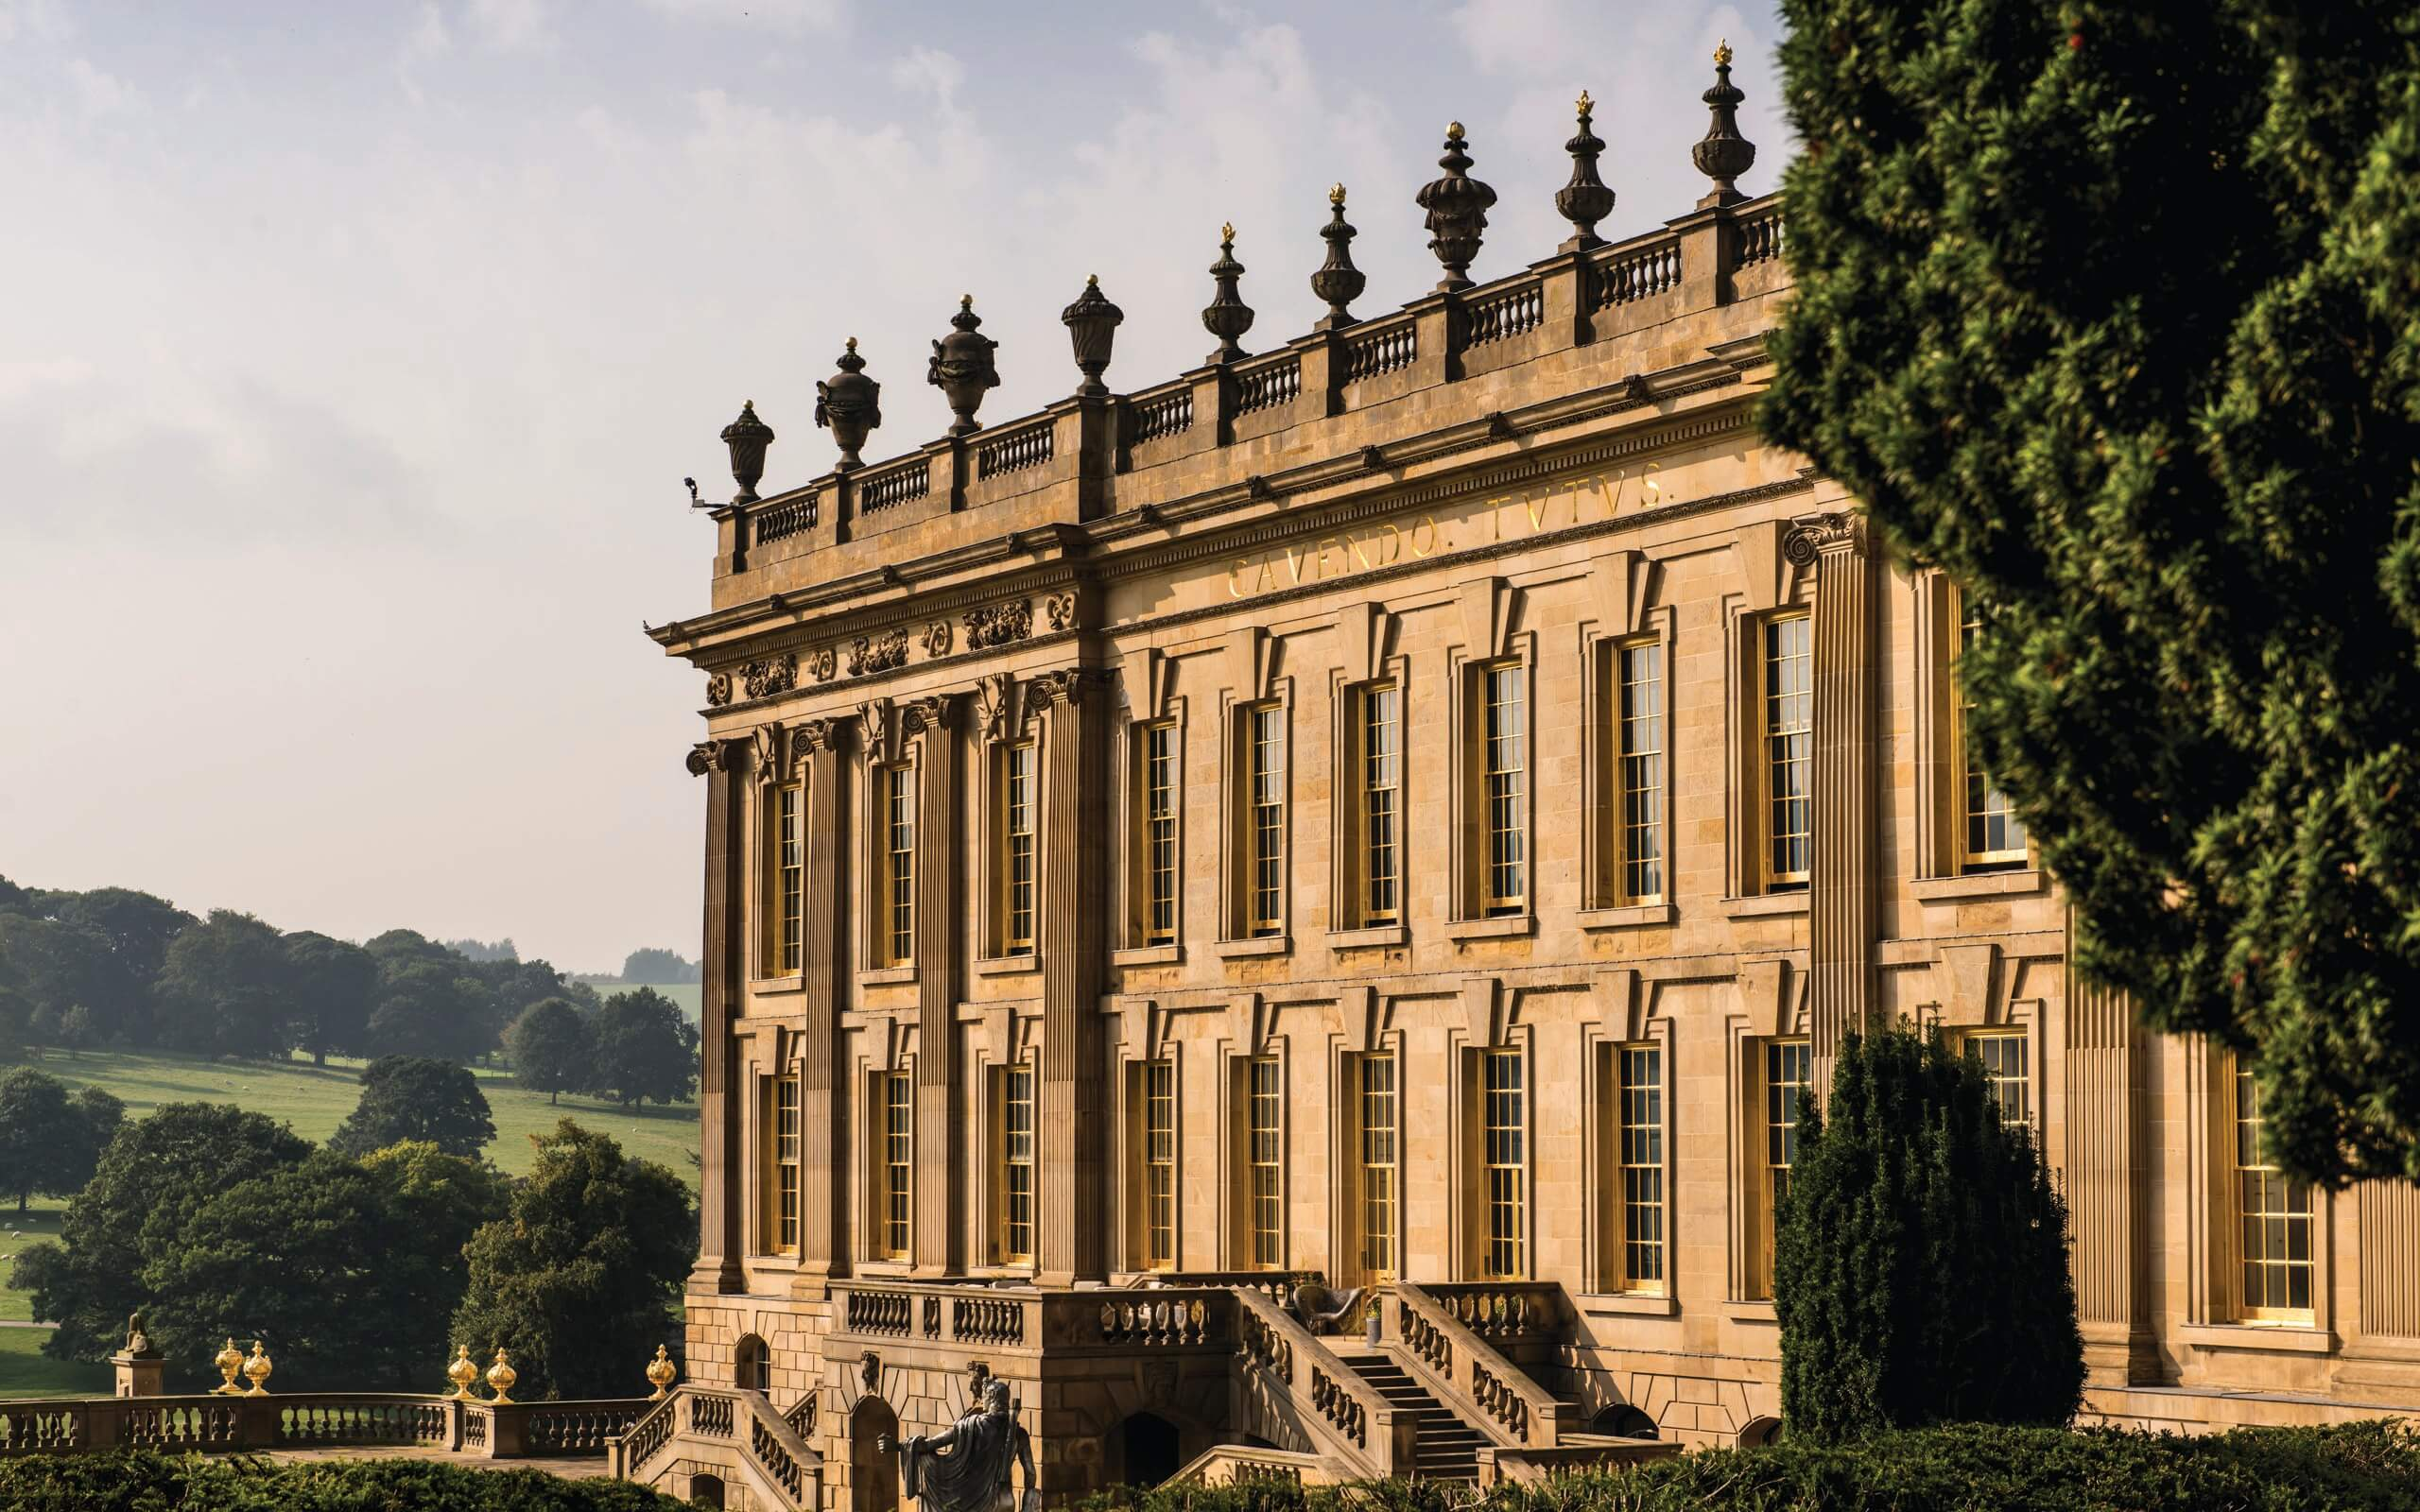 Exterior of Chatsworth house in the sunshine